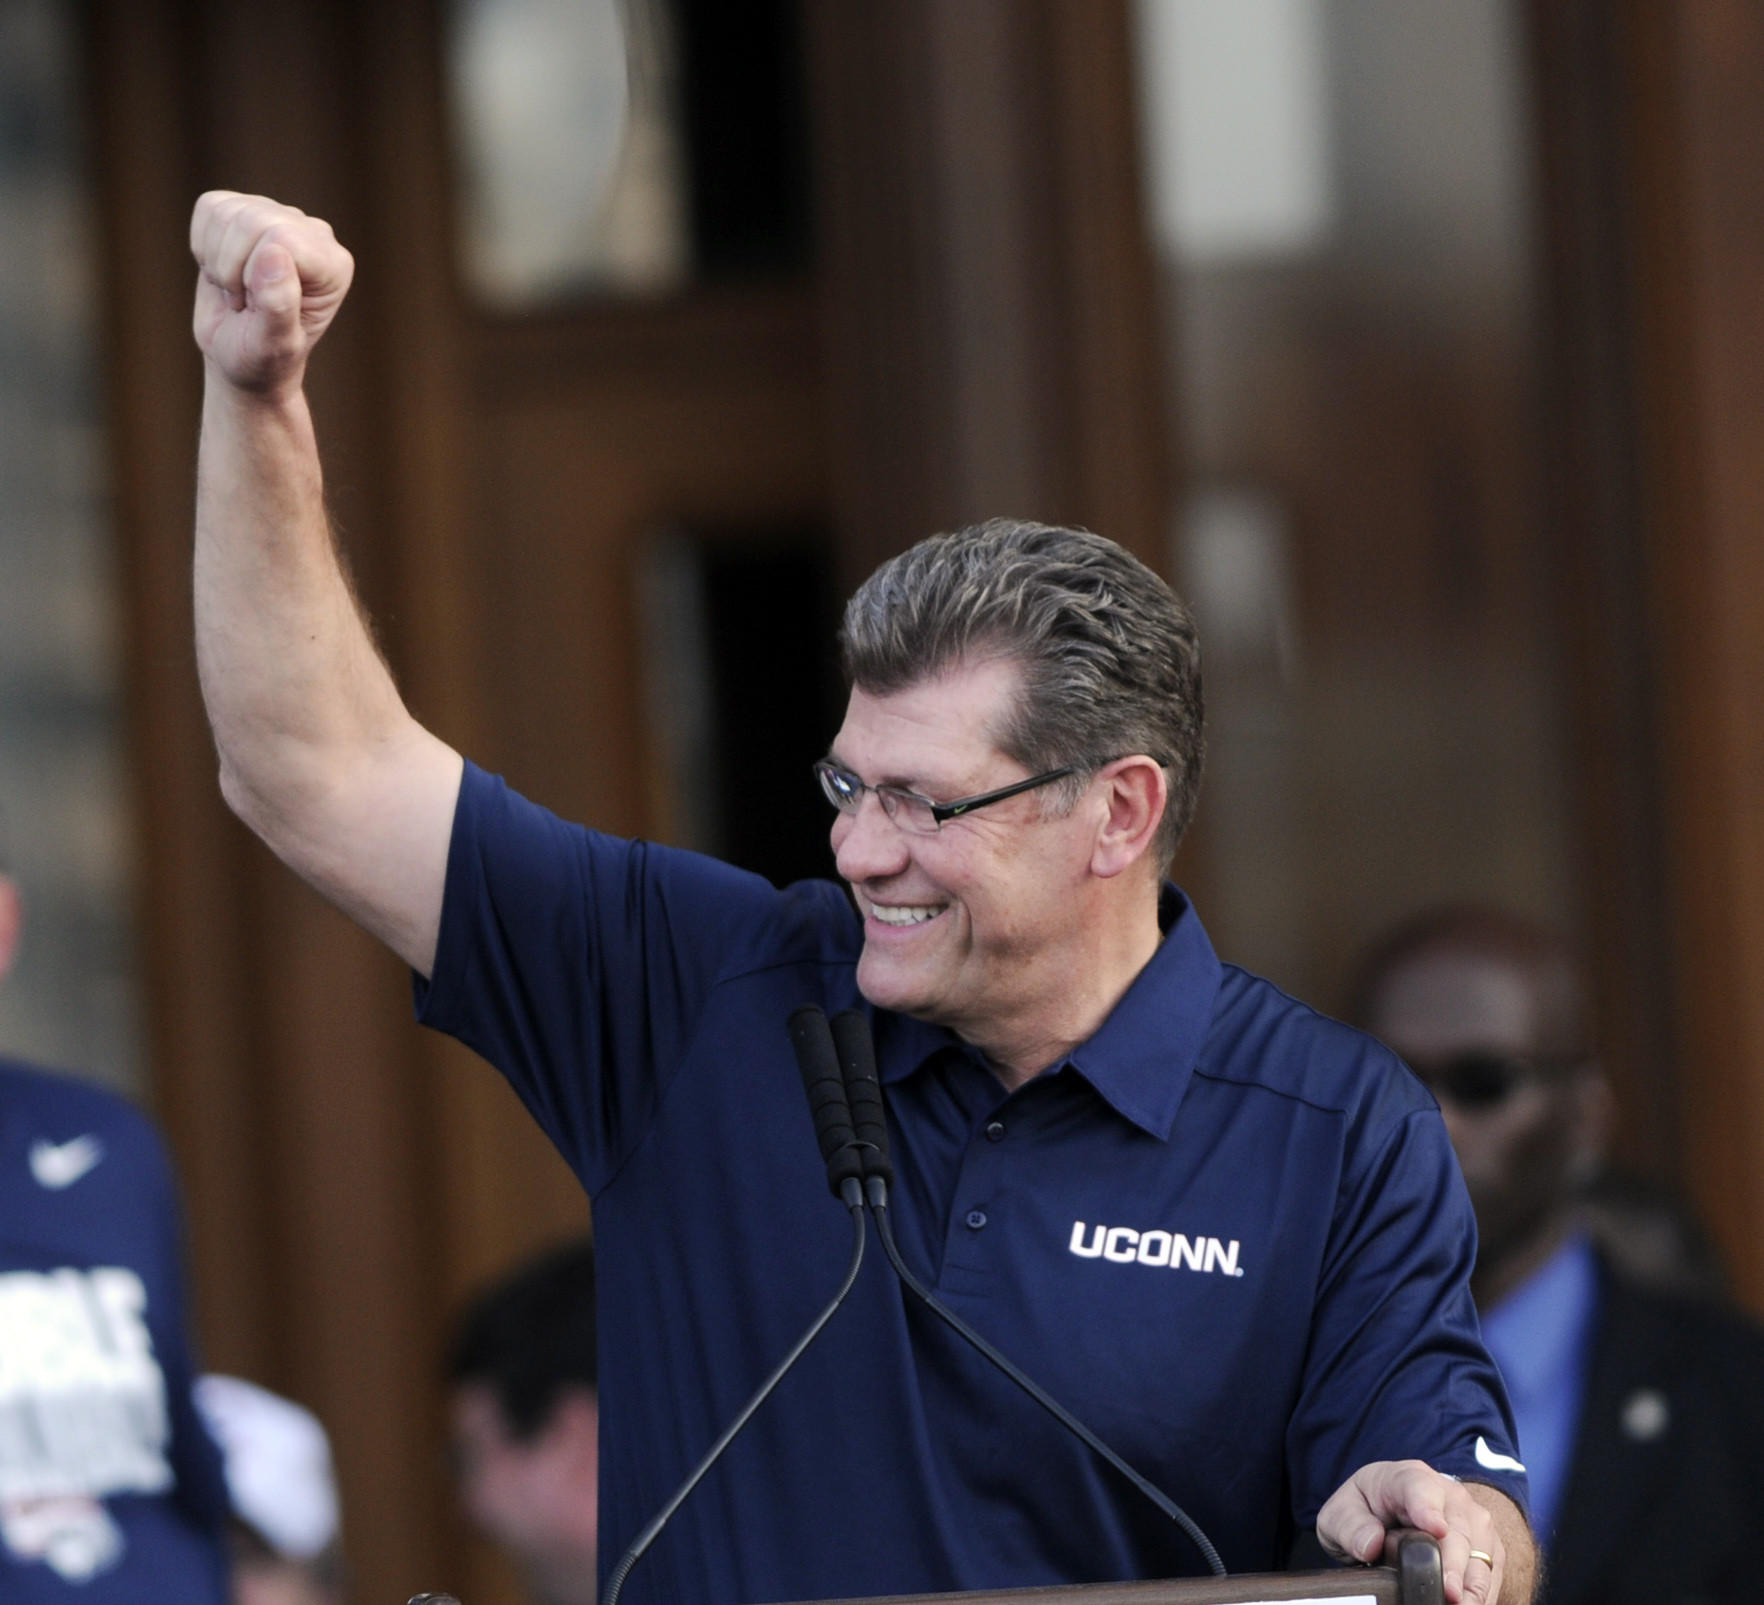 HARTFORD- 4/13/14- hc-photo-uconn-parade-0414- UCONN women's coach Geno Auriemma saluted the thousands gathered for a rally at the State Capitol Sunday following the Dual parade for both championship teams. STEPHEN DUNN|sdunn@courant.com